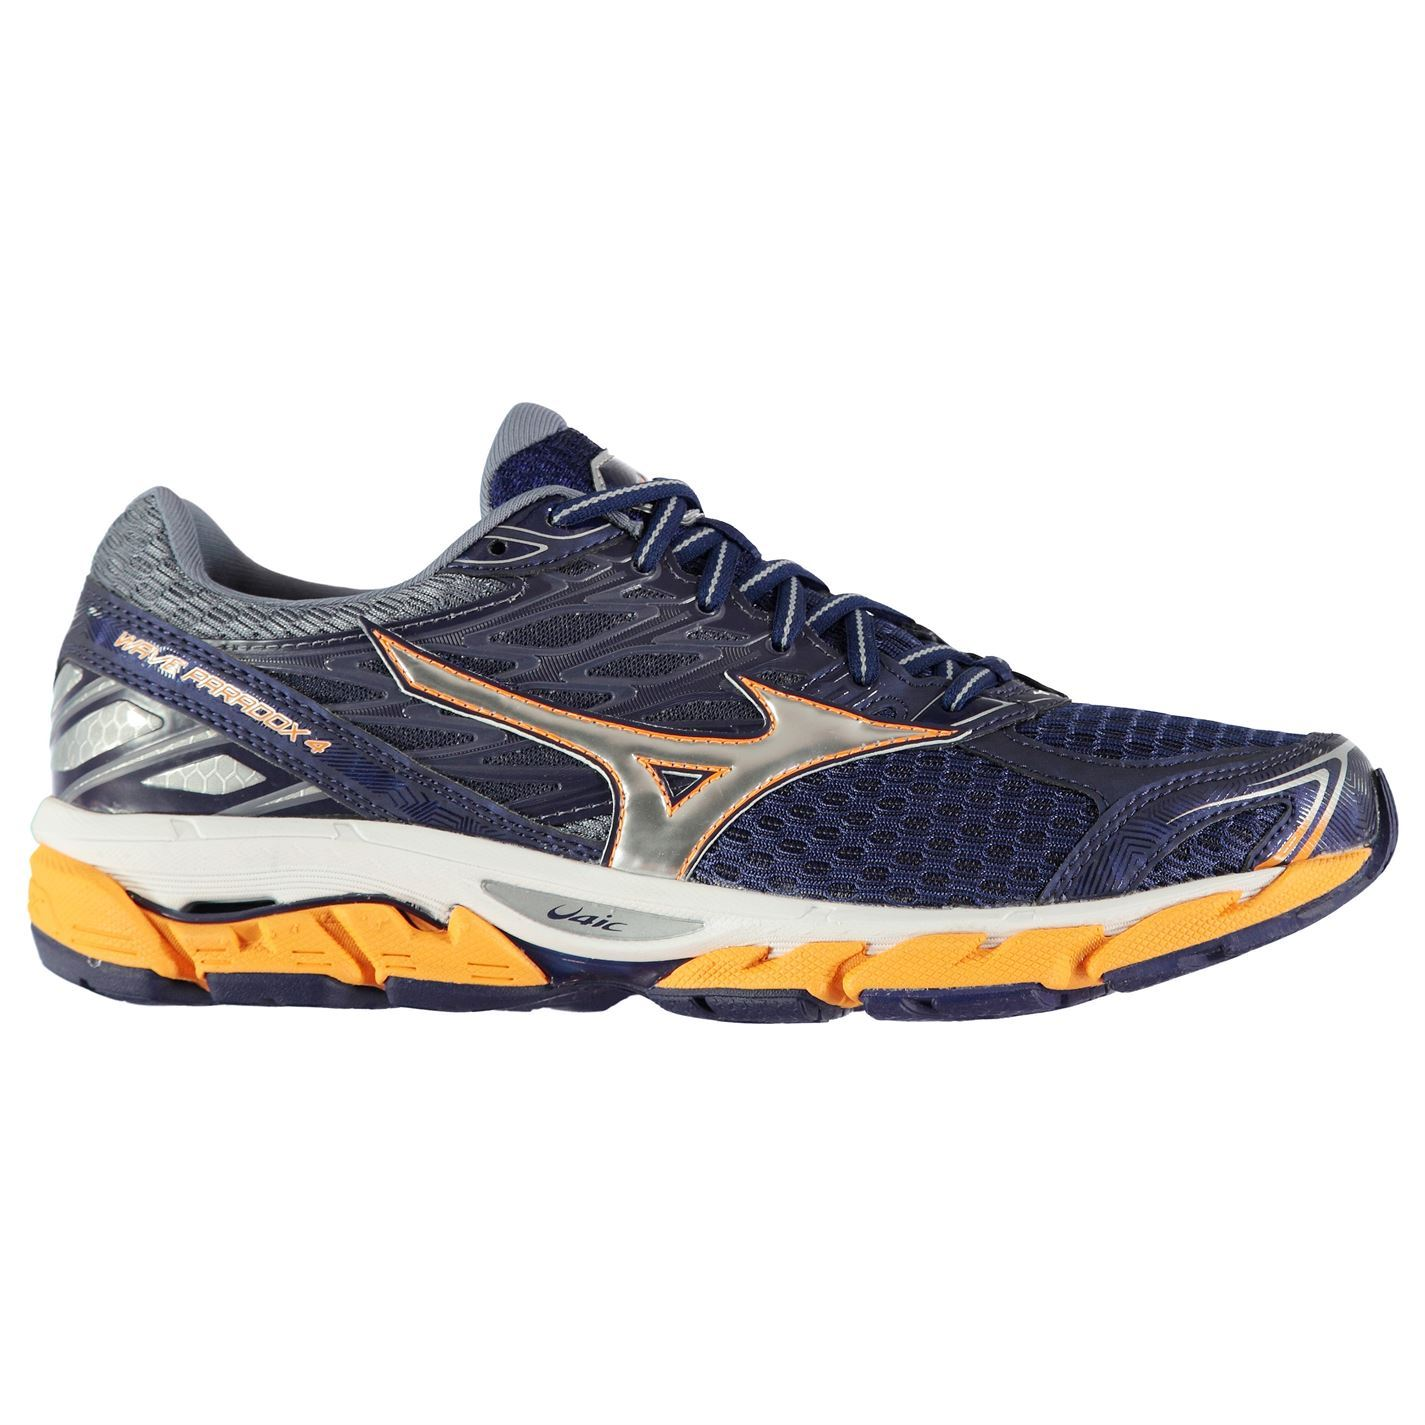 Mizuno Wave Schuhes Paradox 4 Running Schuhes Wave  Herren Gents Road 628631